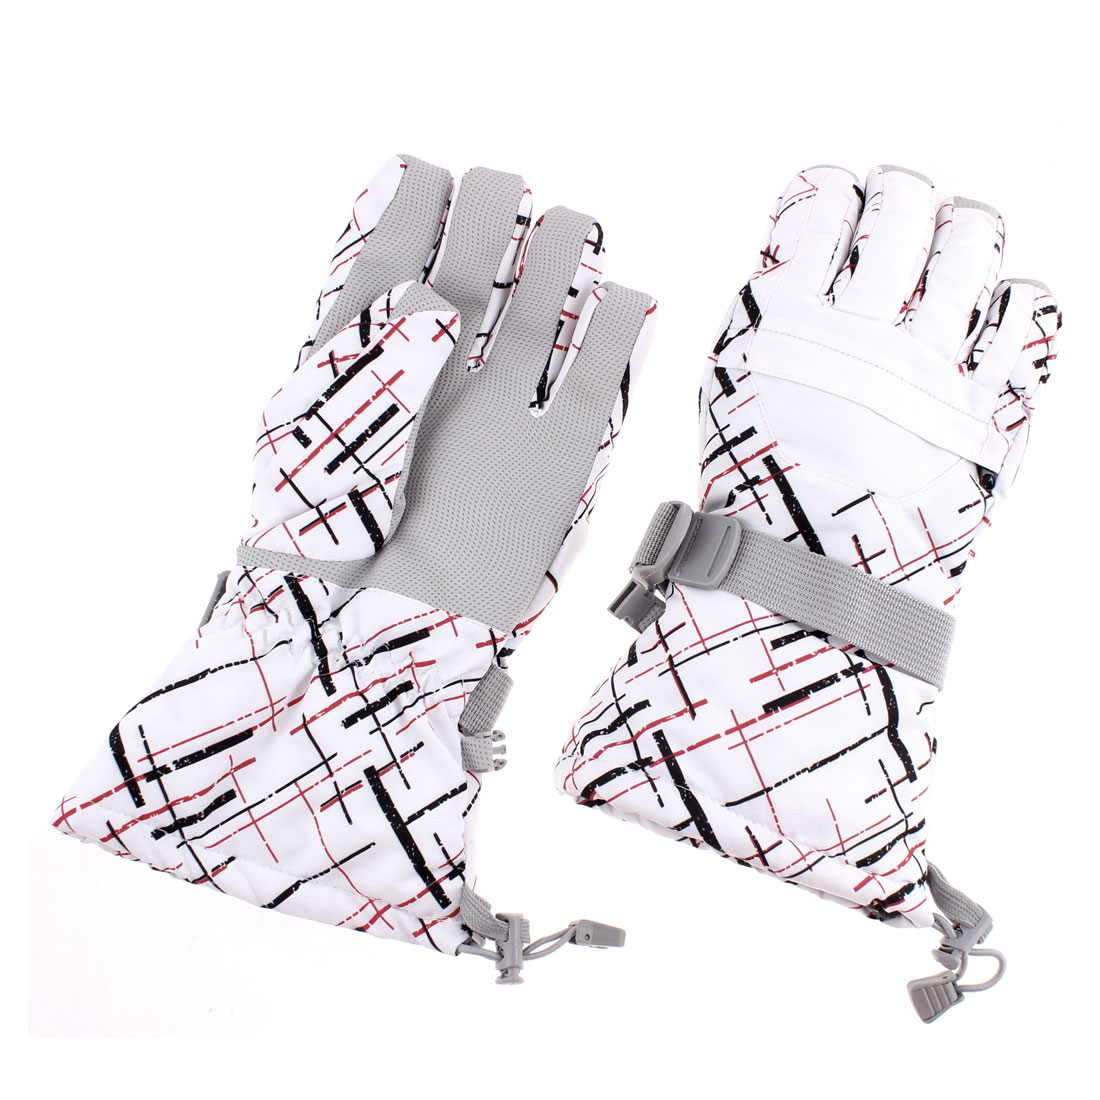 Winter Outdoor Ski Snowboard Gloves White Graffiti XL Pair for Men